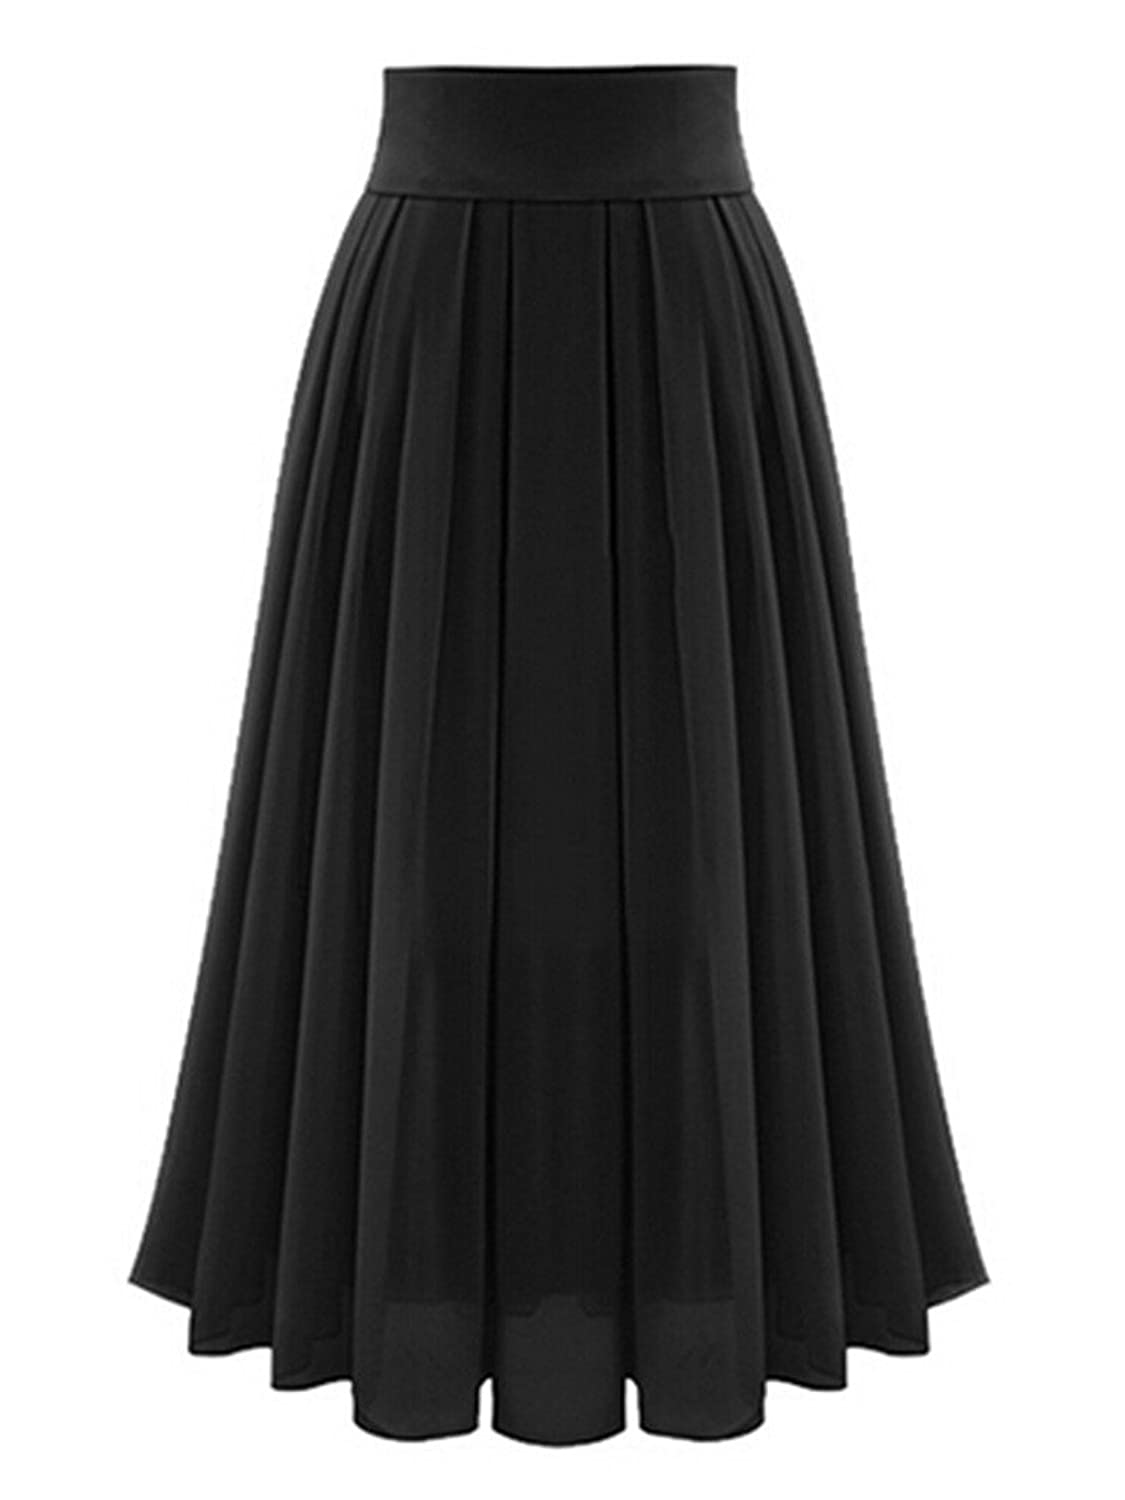 Steampunk Costume Essentials for Women High Waist Chiffon Mesh Tulle Layer Pleated Party Midi Skirt $19.99 AT vintagedancer.com